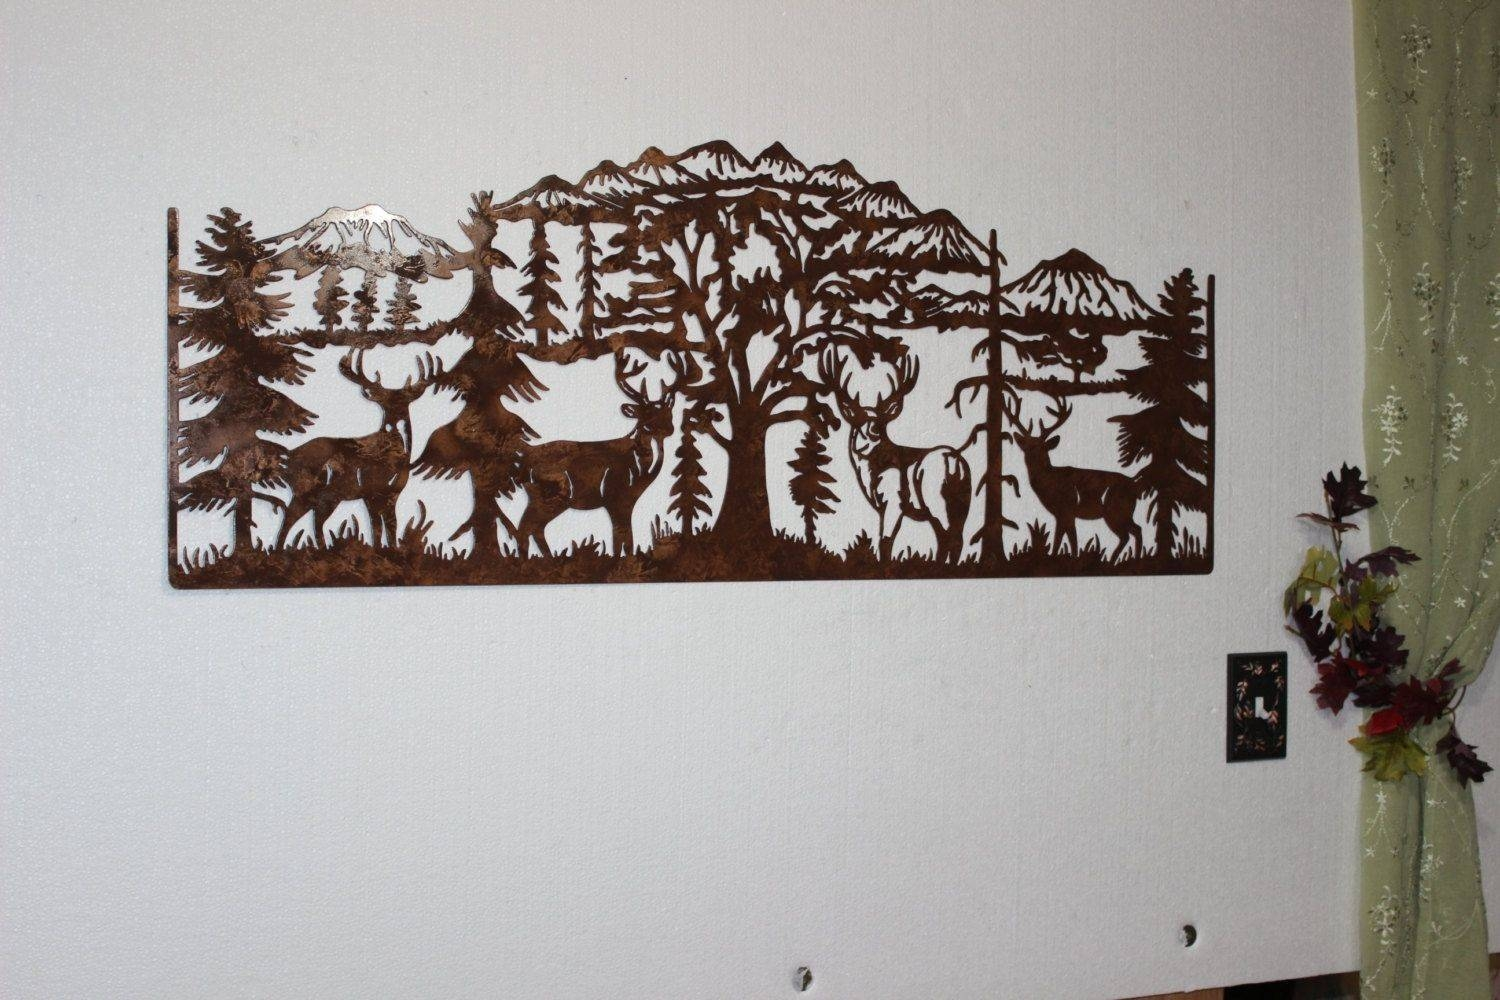 Hand Crafted Deer And Mountain Scene With 4 Majestic Bucks Large Intended For Recent Big Metal Wall Art (View 6 of 15)